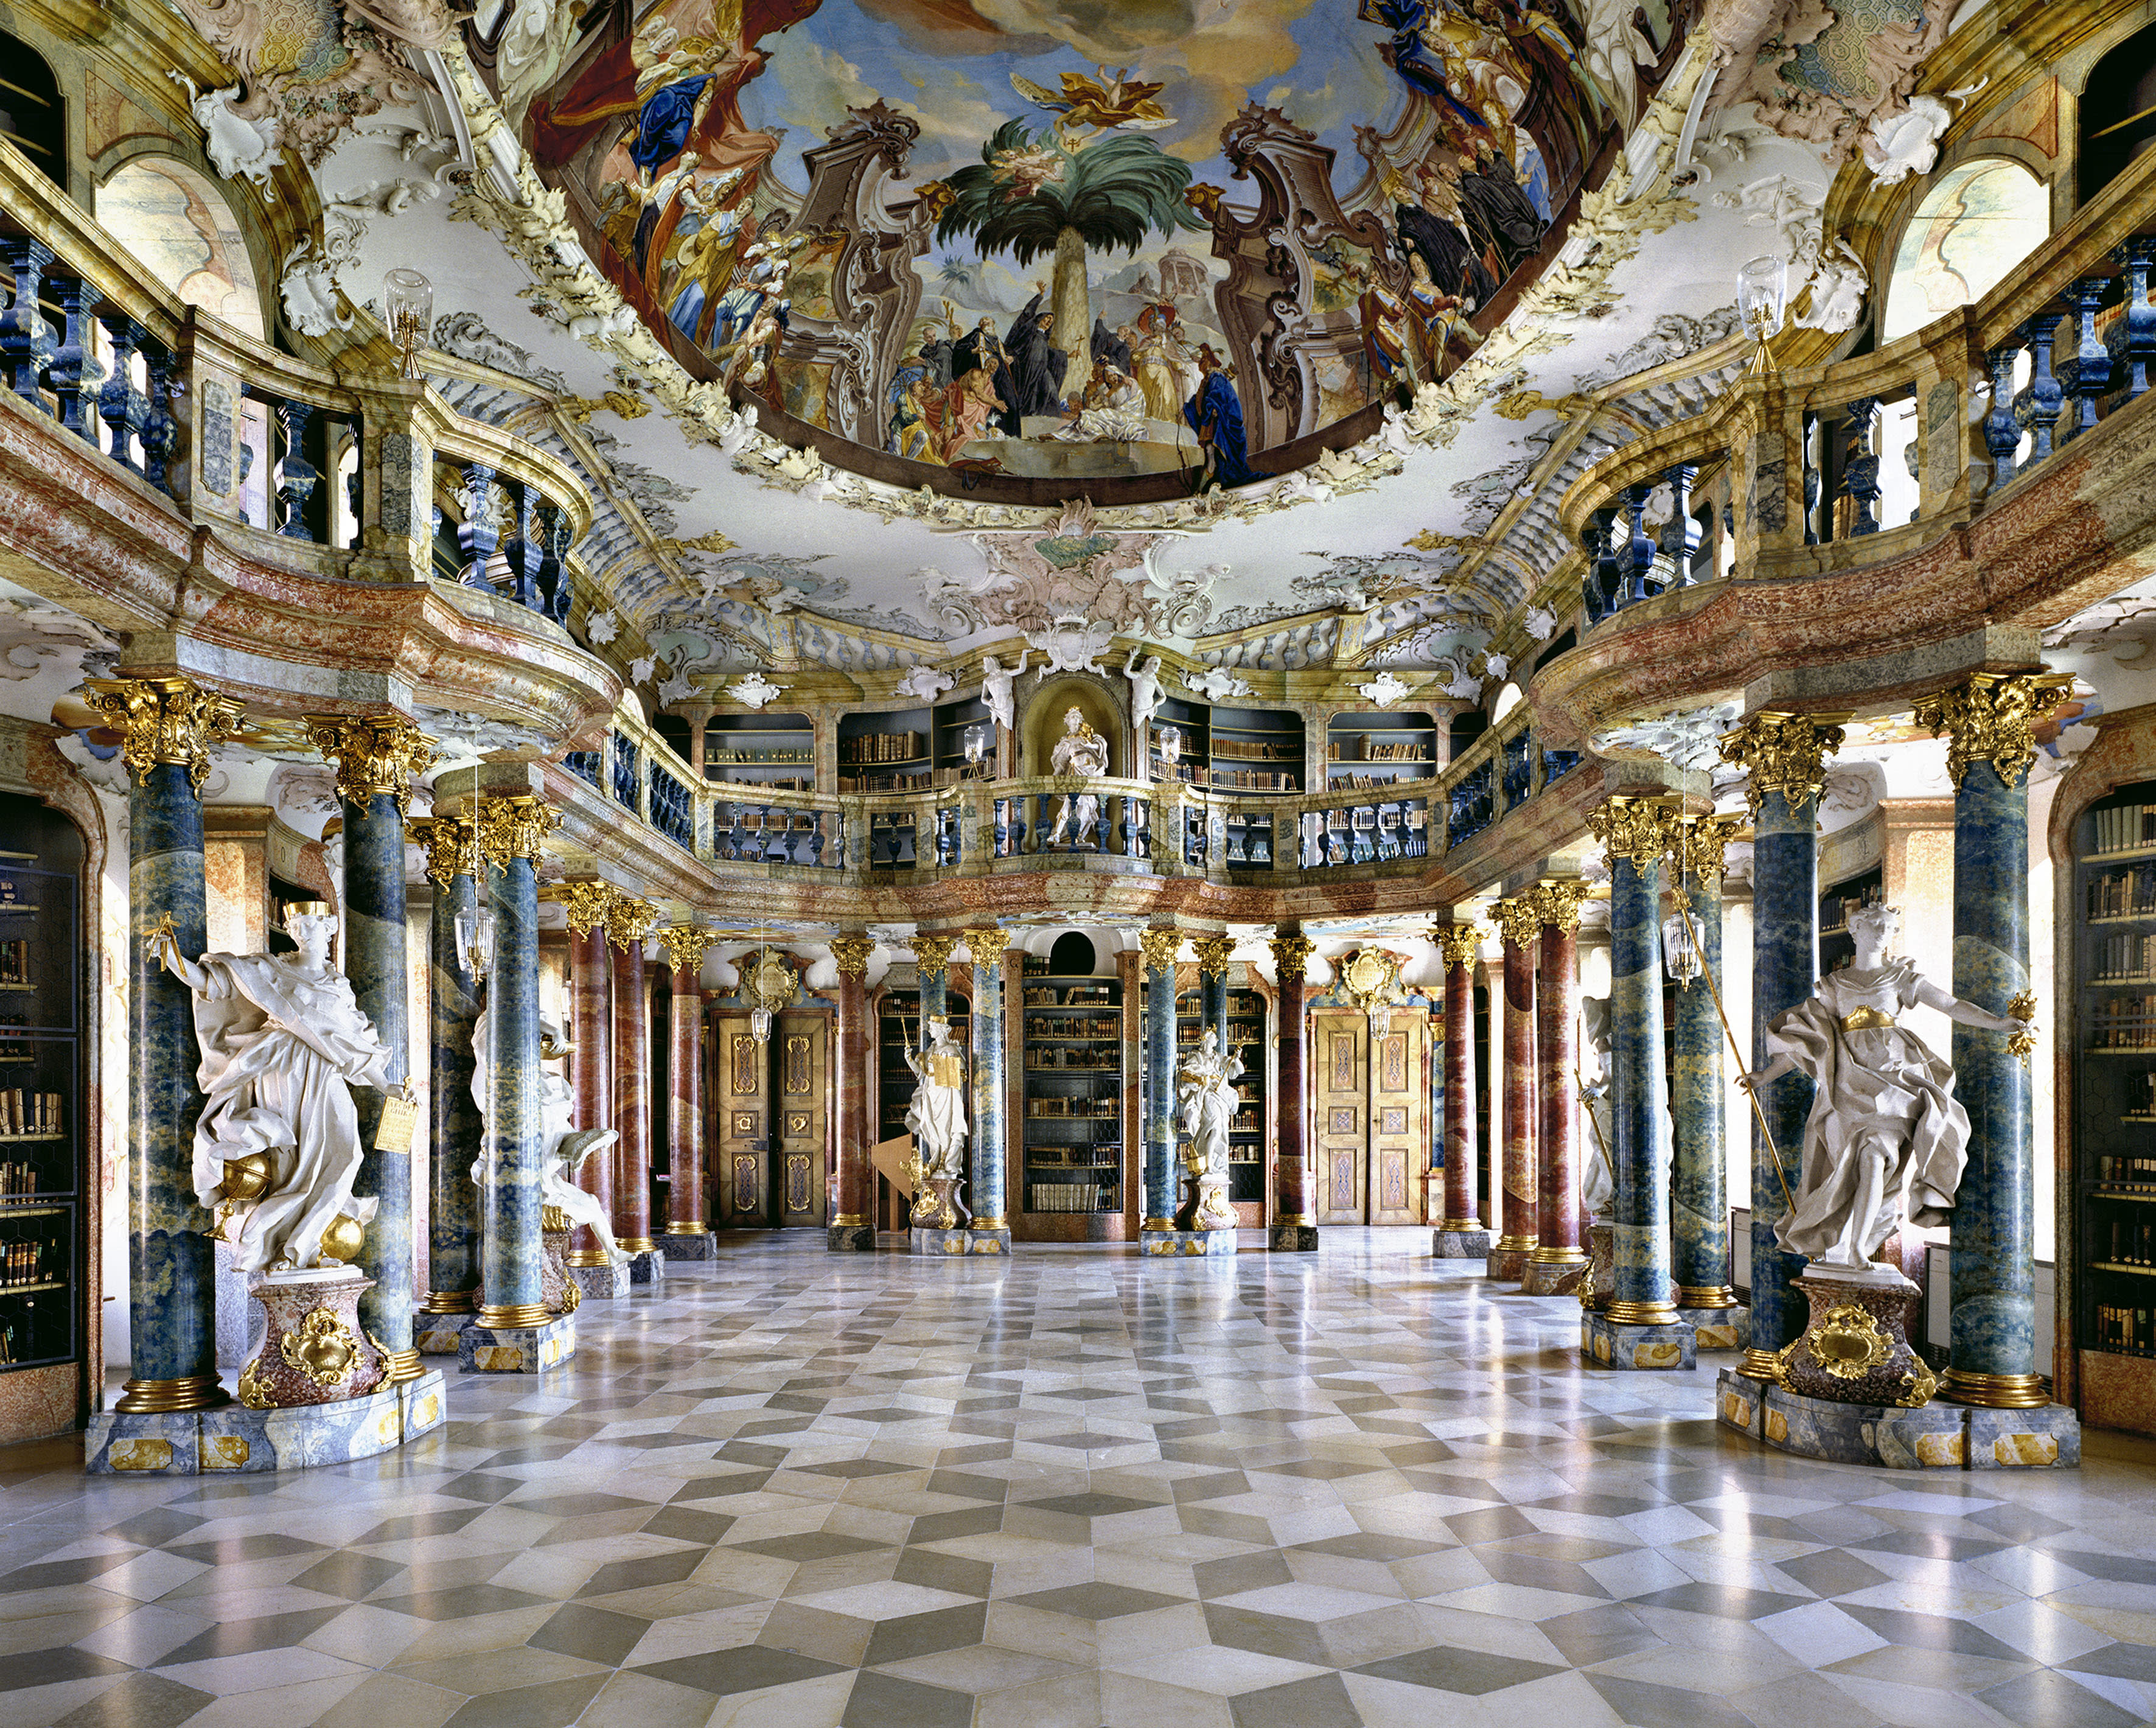 <p>Wiblingen Abbey Library, Germany. (Photo: Massimo Listri/Caters News) </p>